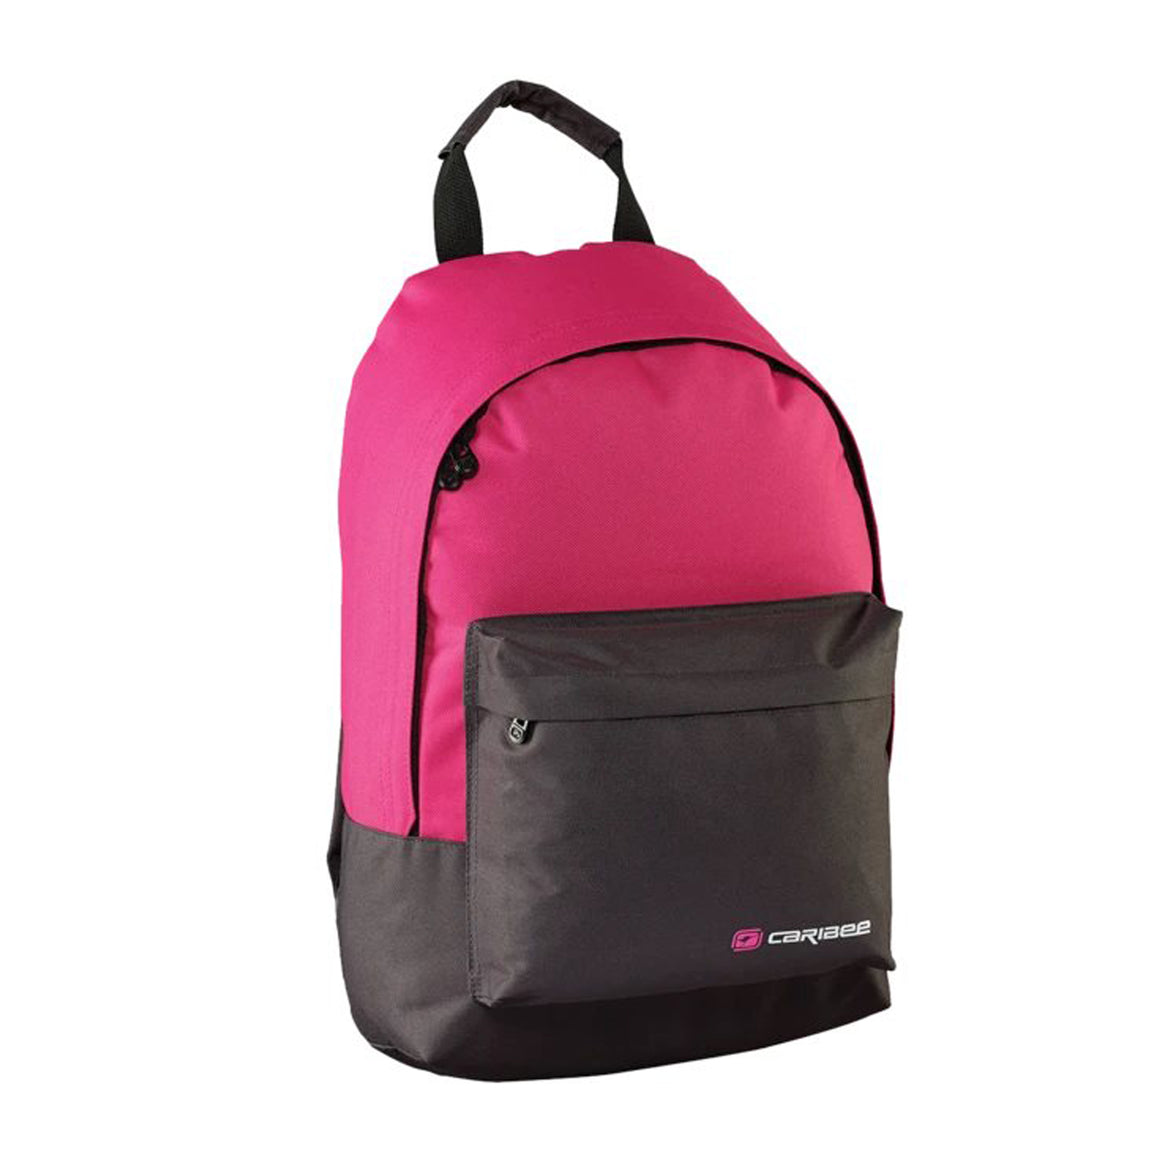 Campus Backpack in Charcoal & Pink